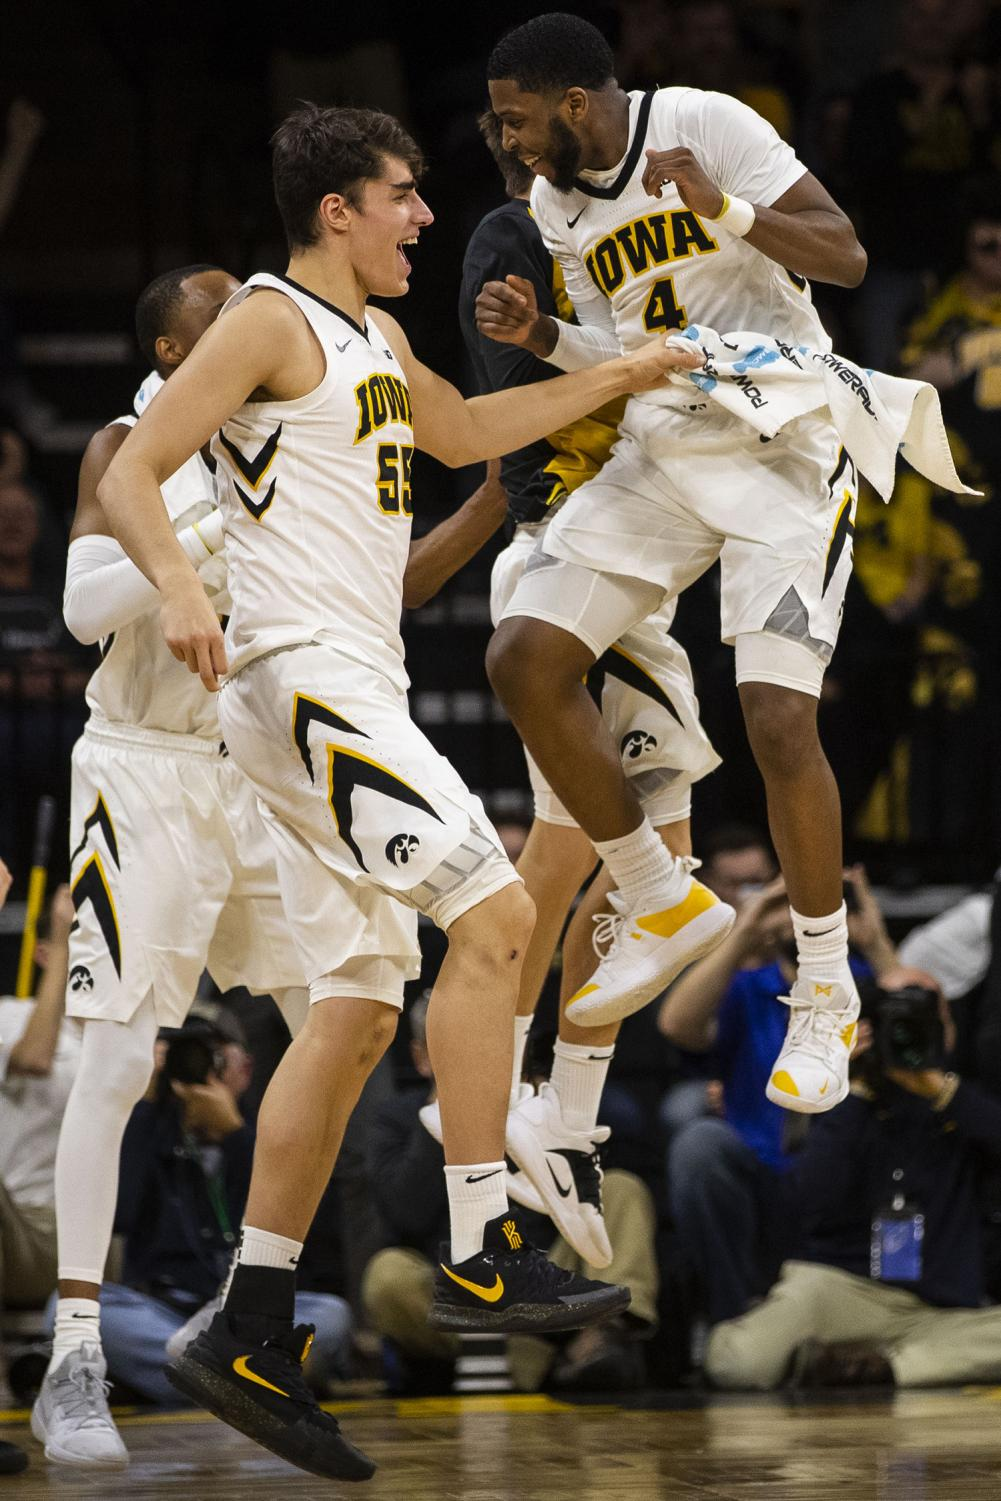 Iowa+forward+Luka+Garza+%2855%29+and+guard+Isaiah+Moss+%284%29+celebrate+during+the+Iowa%2FMichigan+men%27s+basketball+game+at+Carver-Hawkeye+Arena+on+Friday%2C+February+1%2C+2019.+The+Hawkeyes+took+down+the+No.+5+ranked+Wolverines%2C+74-59.+